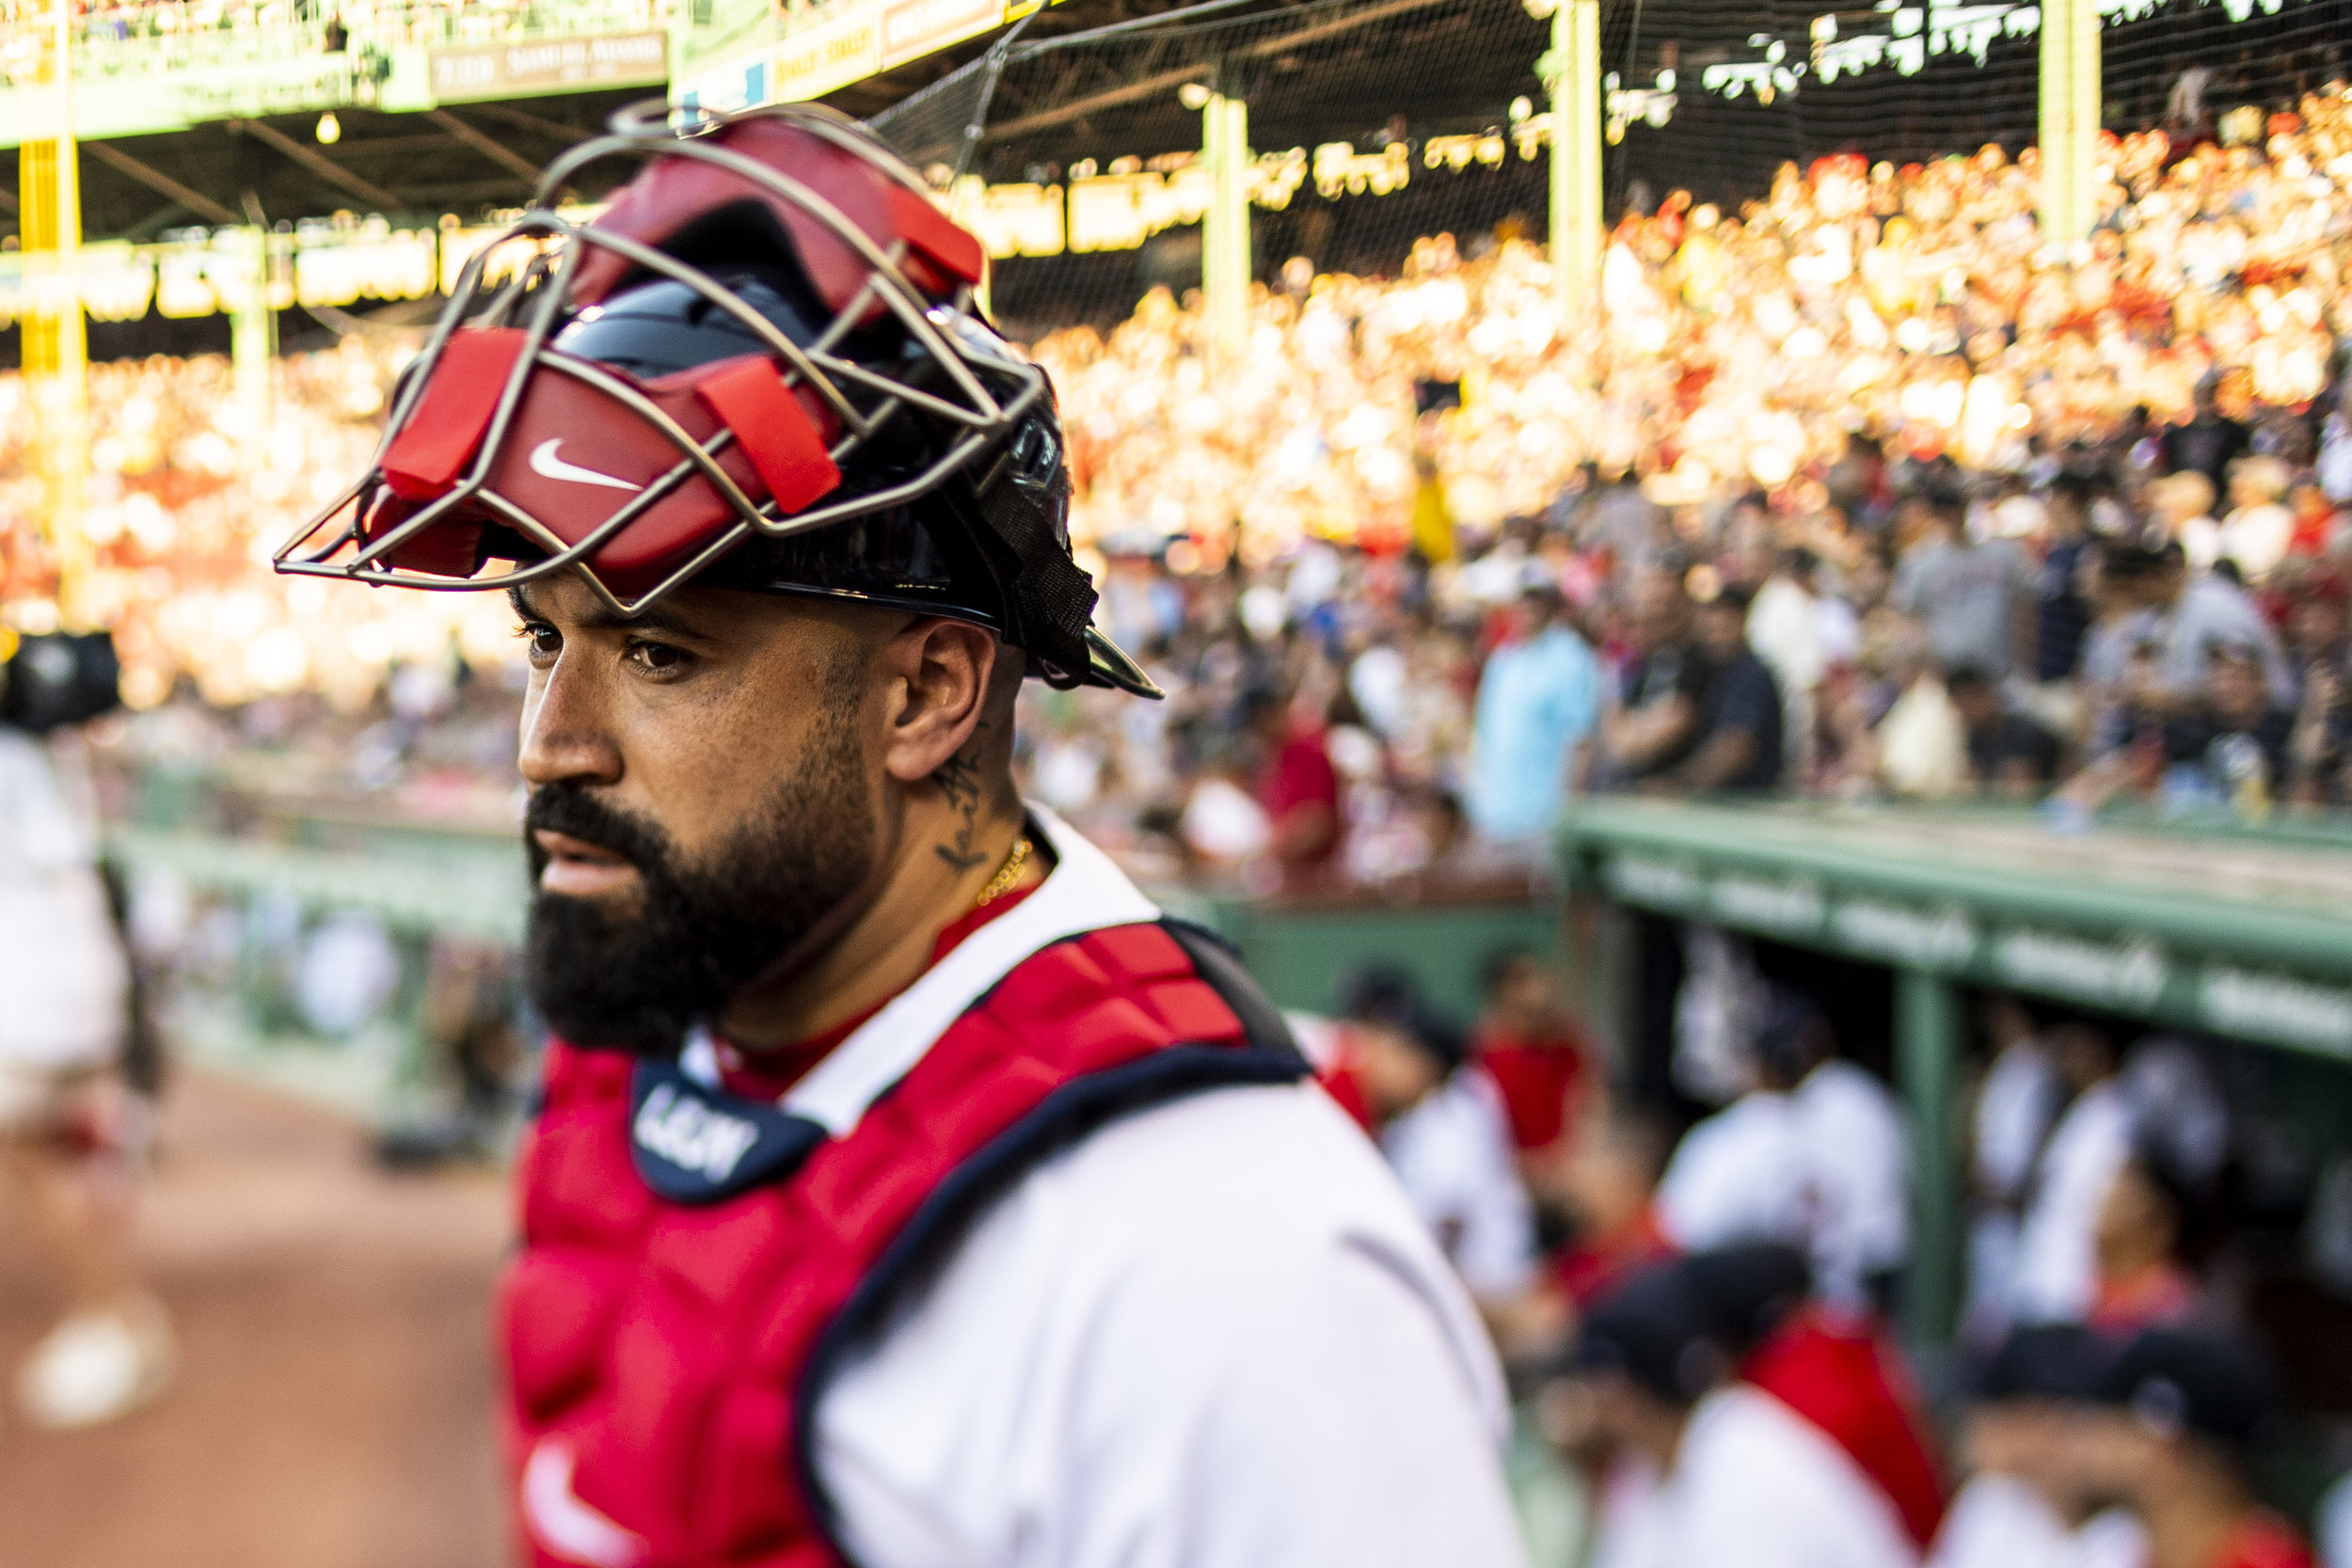 July 8, 2018, Boston, MA: Boston Red Sox catcher Sandy Leon prepares to take the field as the Boston Red Sox face the Texas Rangers Fenway Park in Boston, Massachusetts on Monday, July 9, 2018. (Photo by Matthew Thomas/Boston Red Sox)